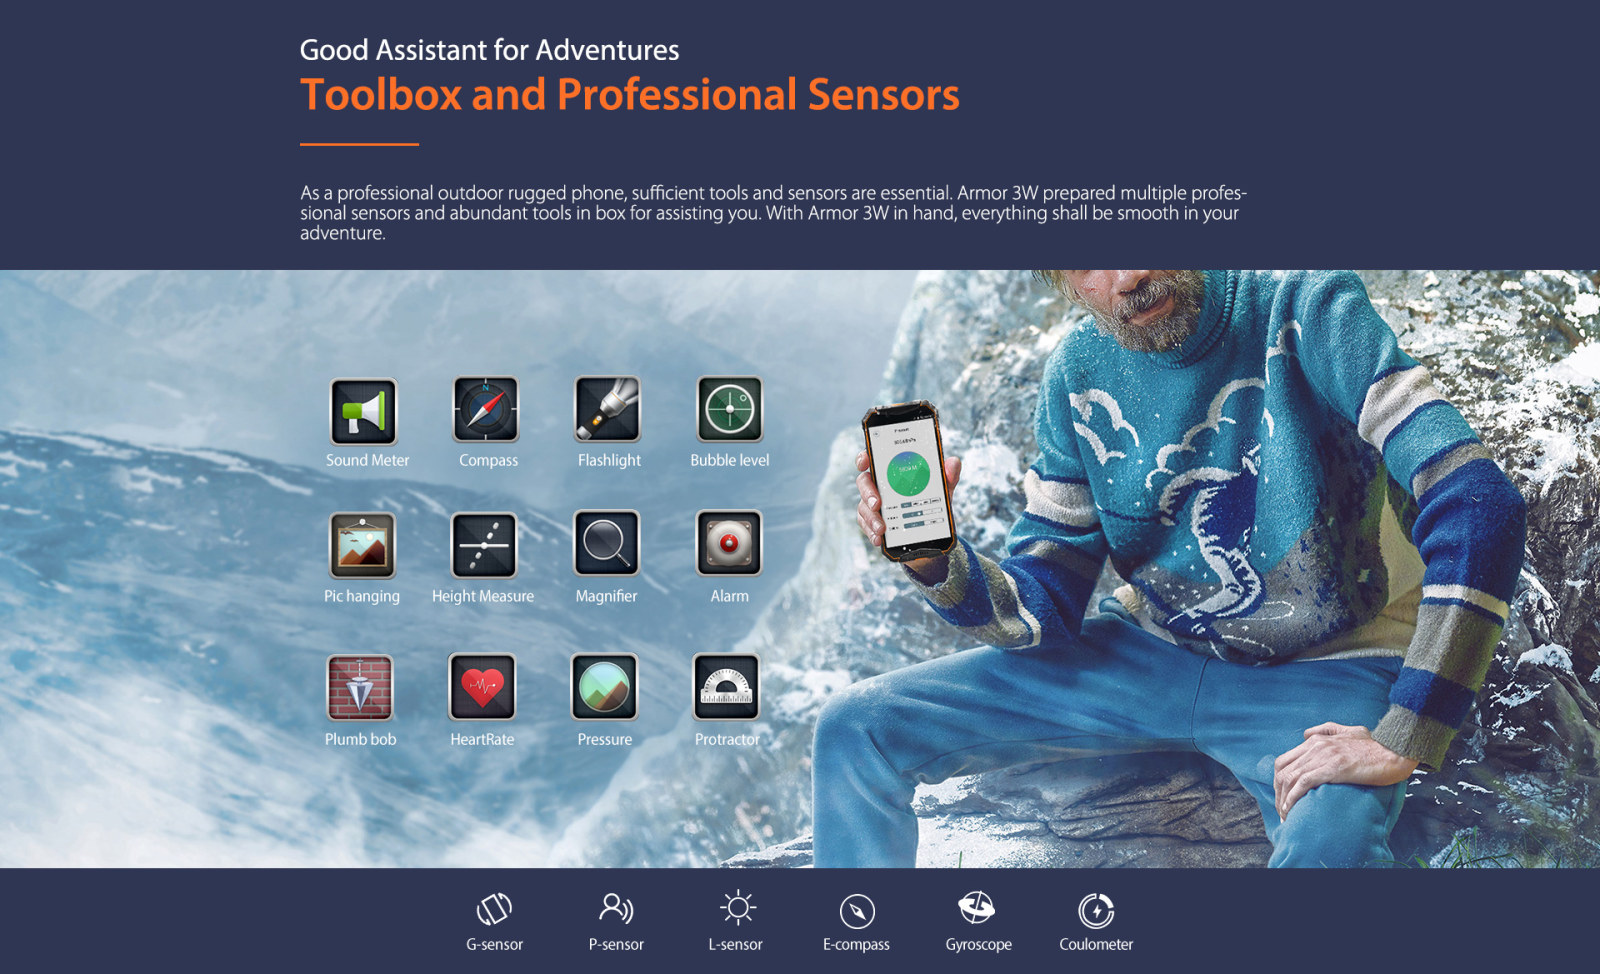 Ulefone professional apps toolkit